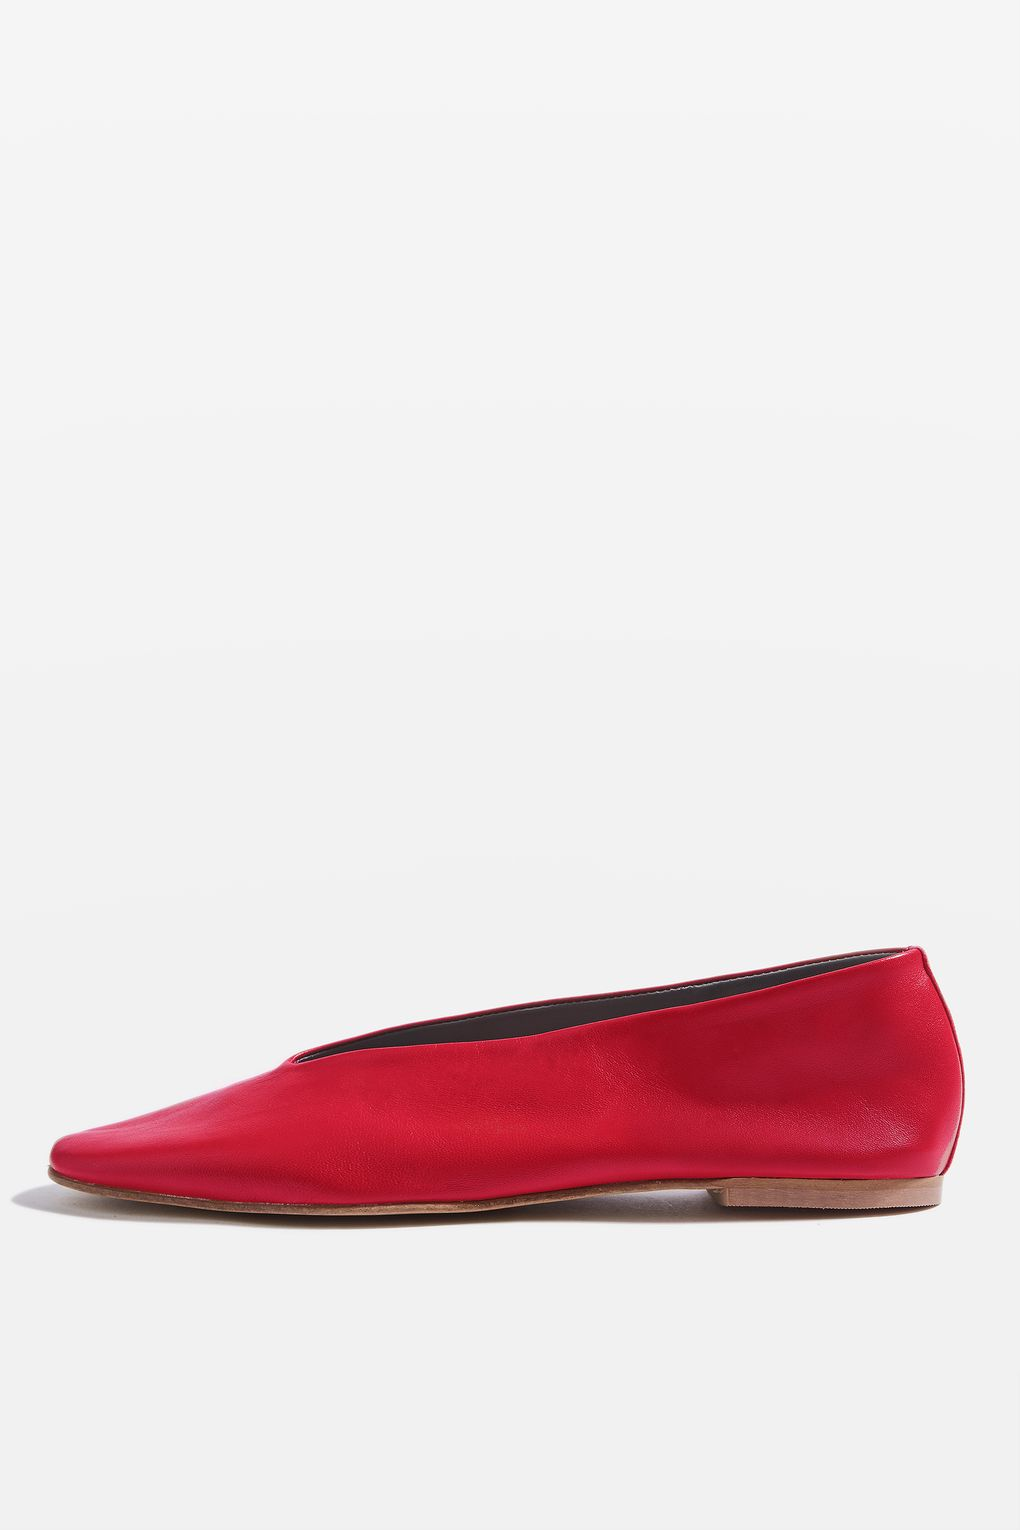 What We Want: KICK Softy Ballet Shoe by Topshop